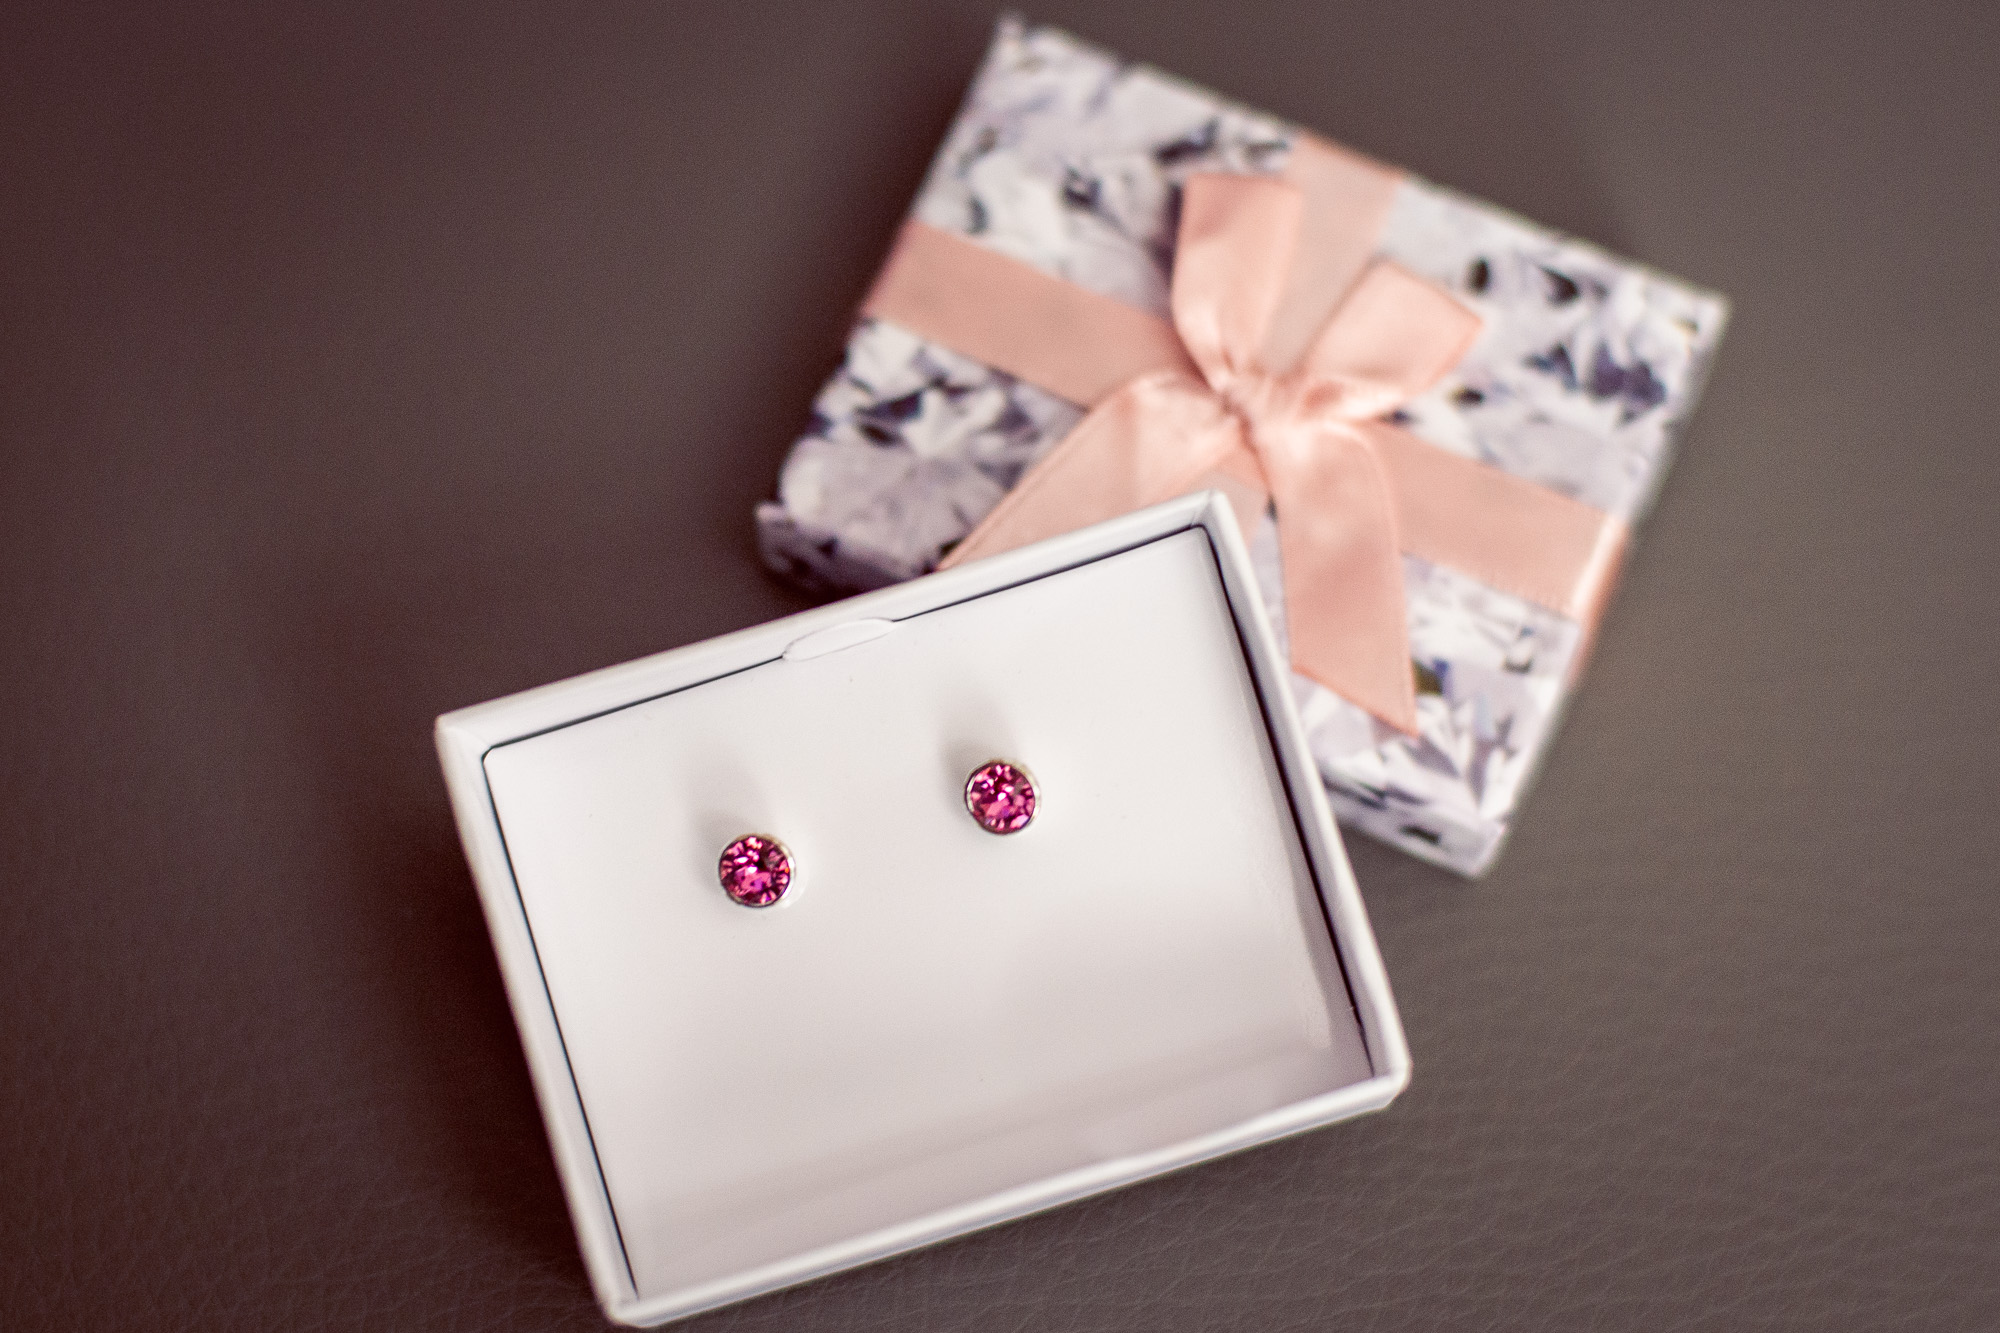 The bridemaids were gifted these pink gemstone earrings to match the soft pink theme. -